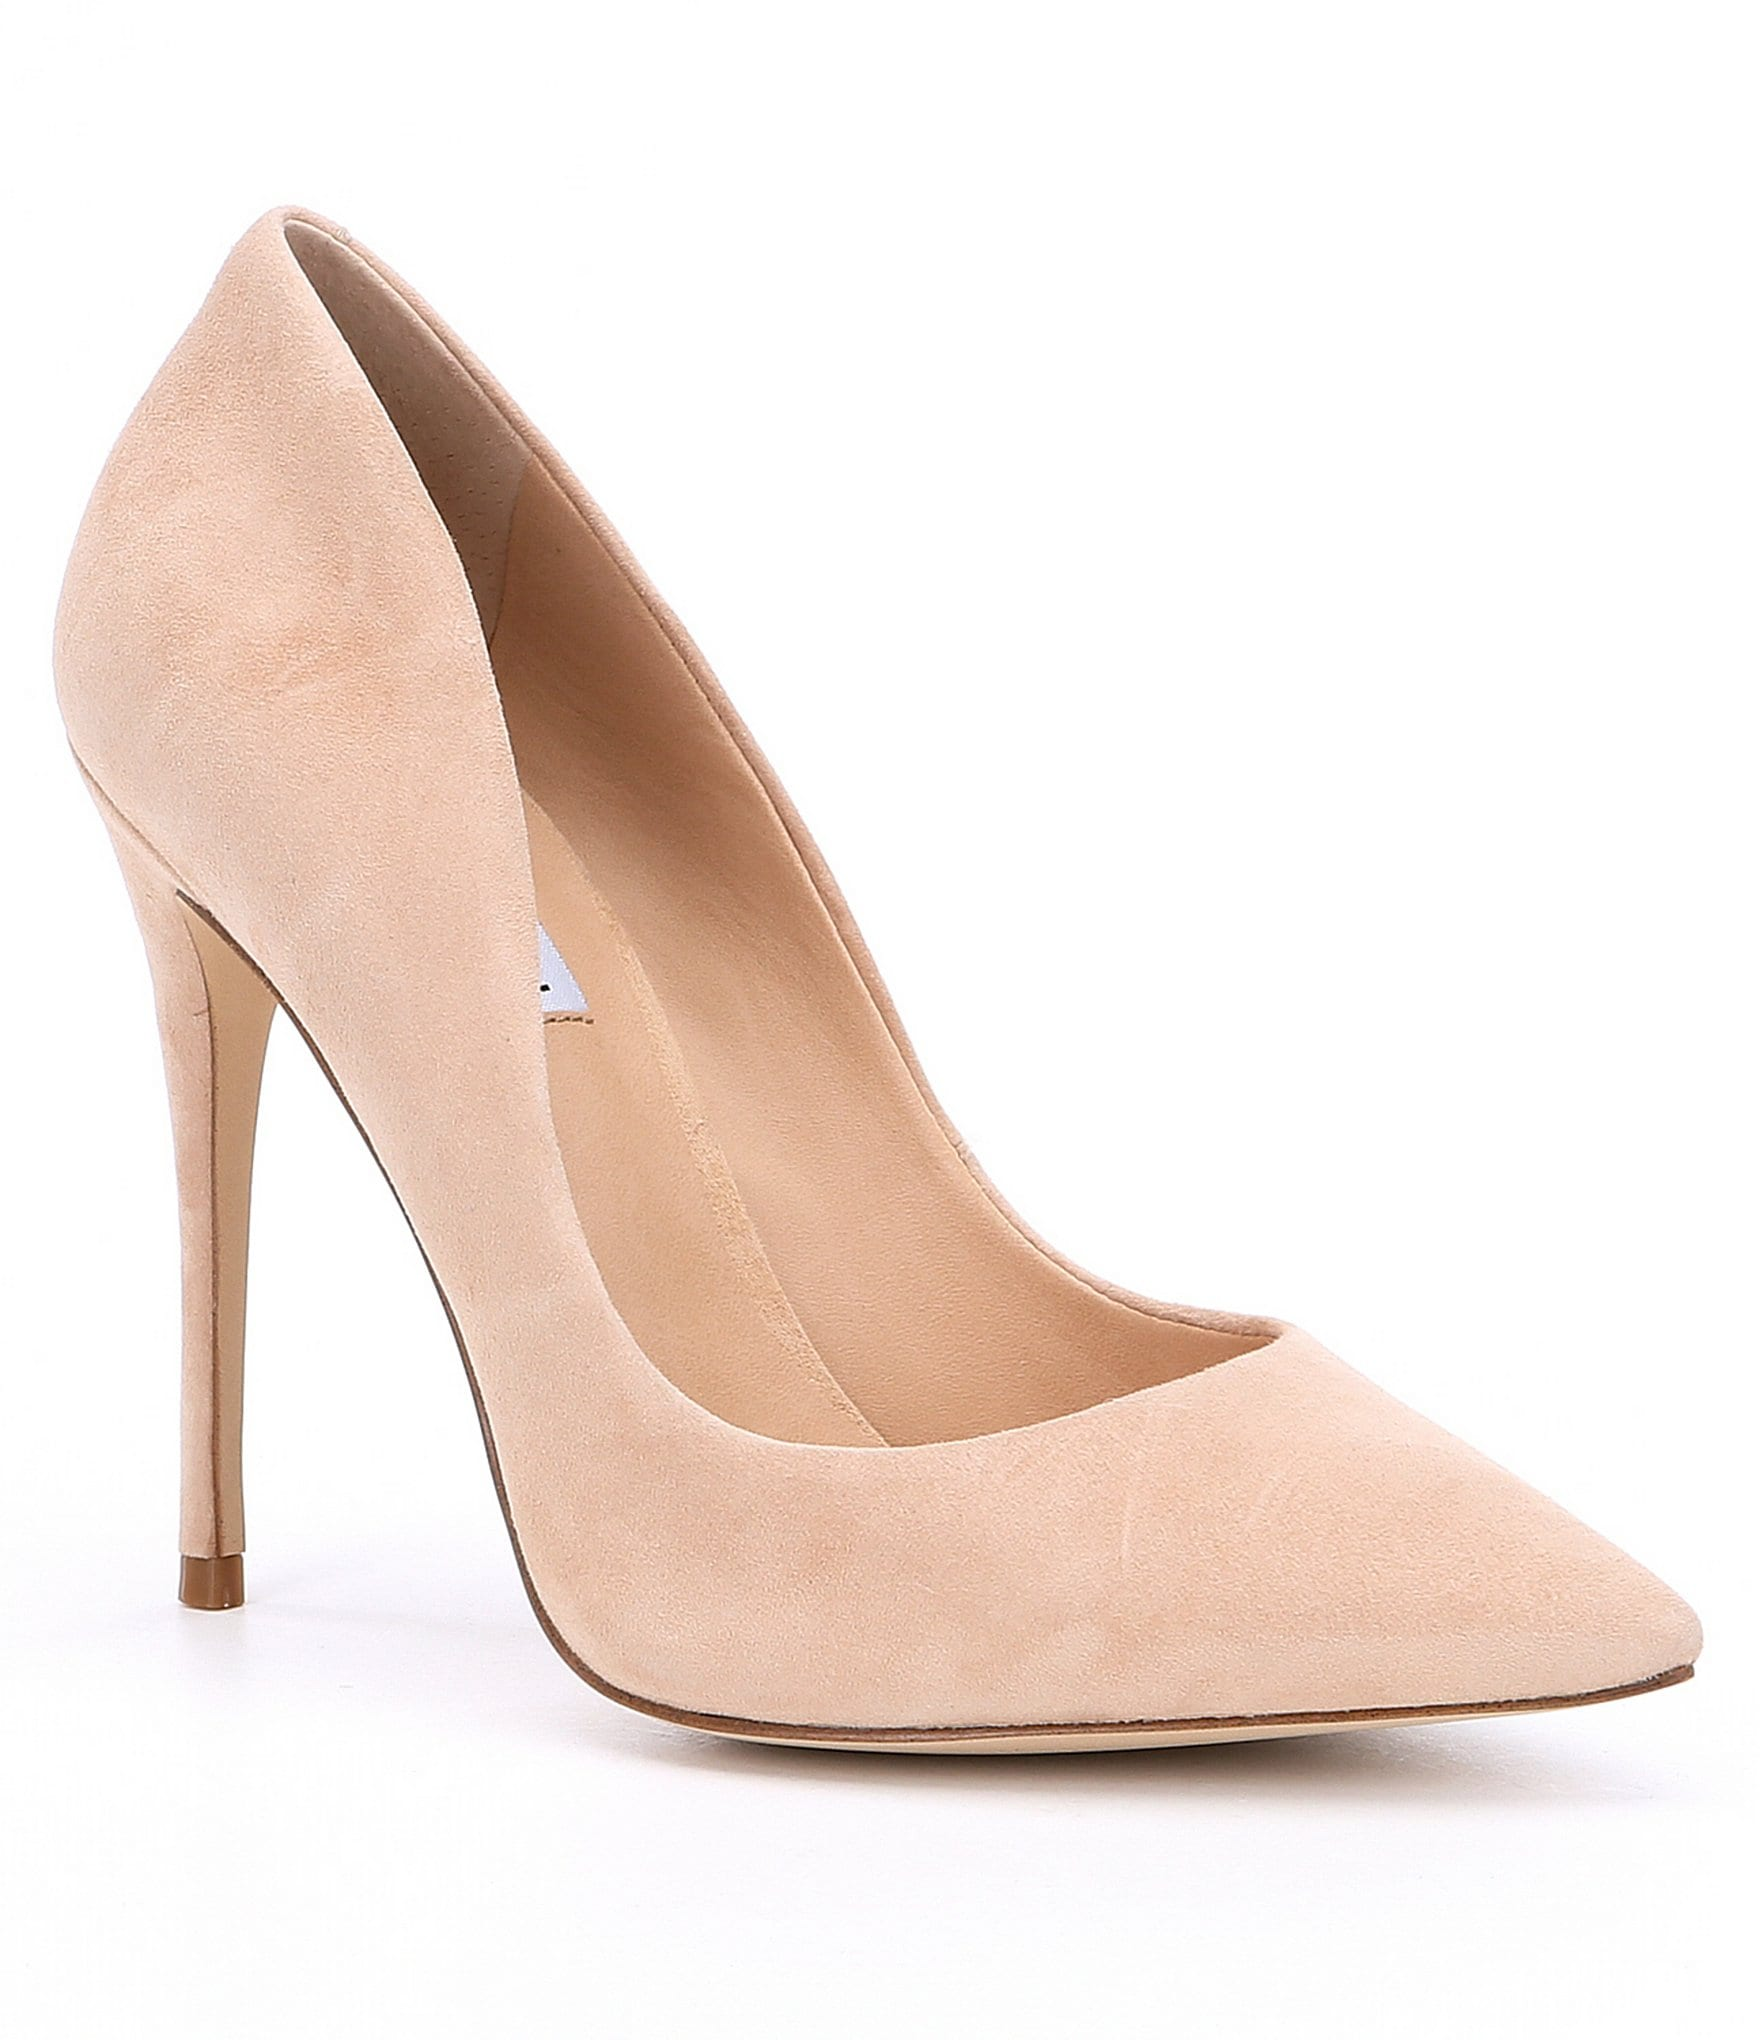 Image Result For Blush Colored Pumps